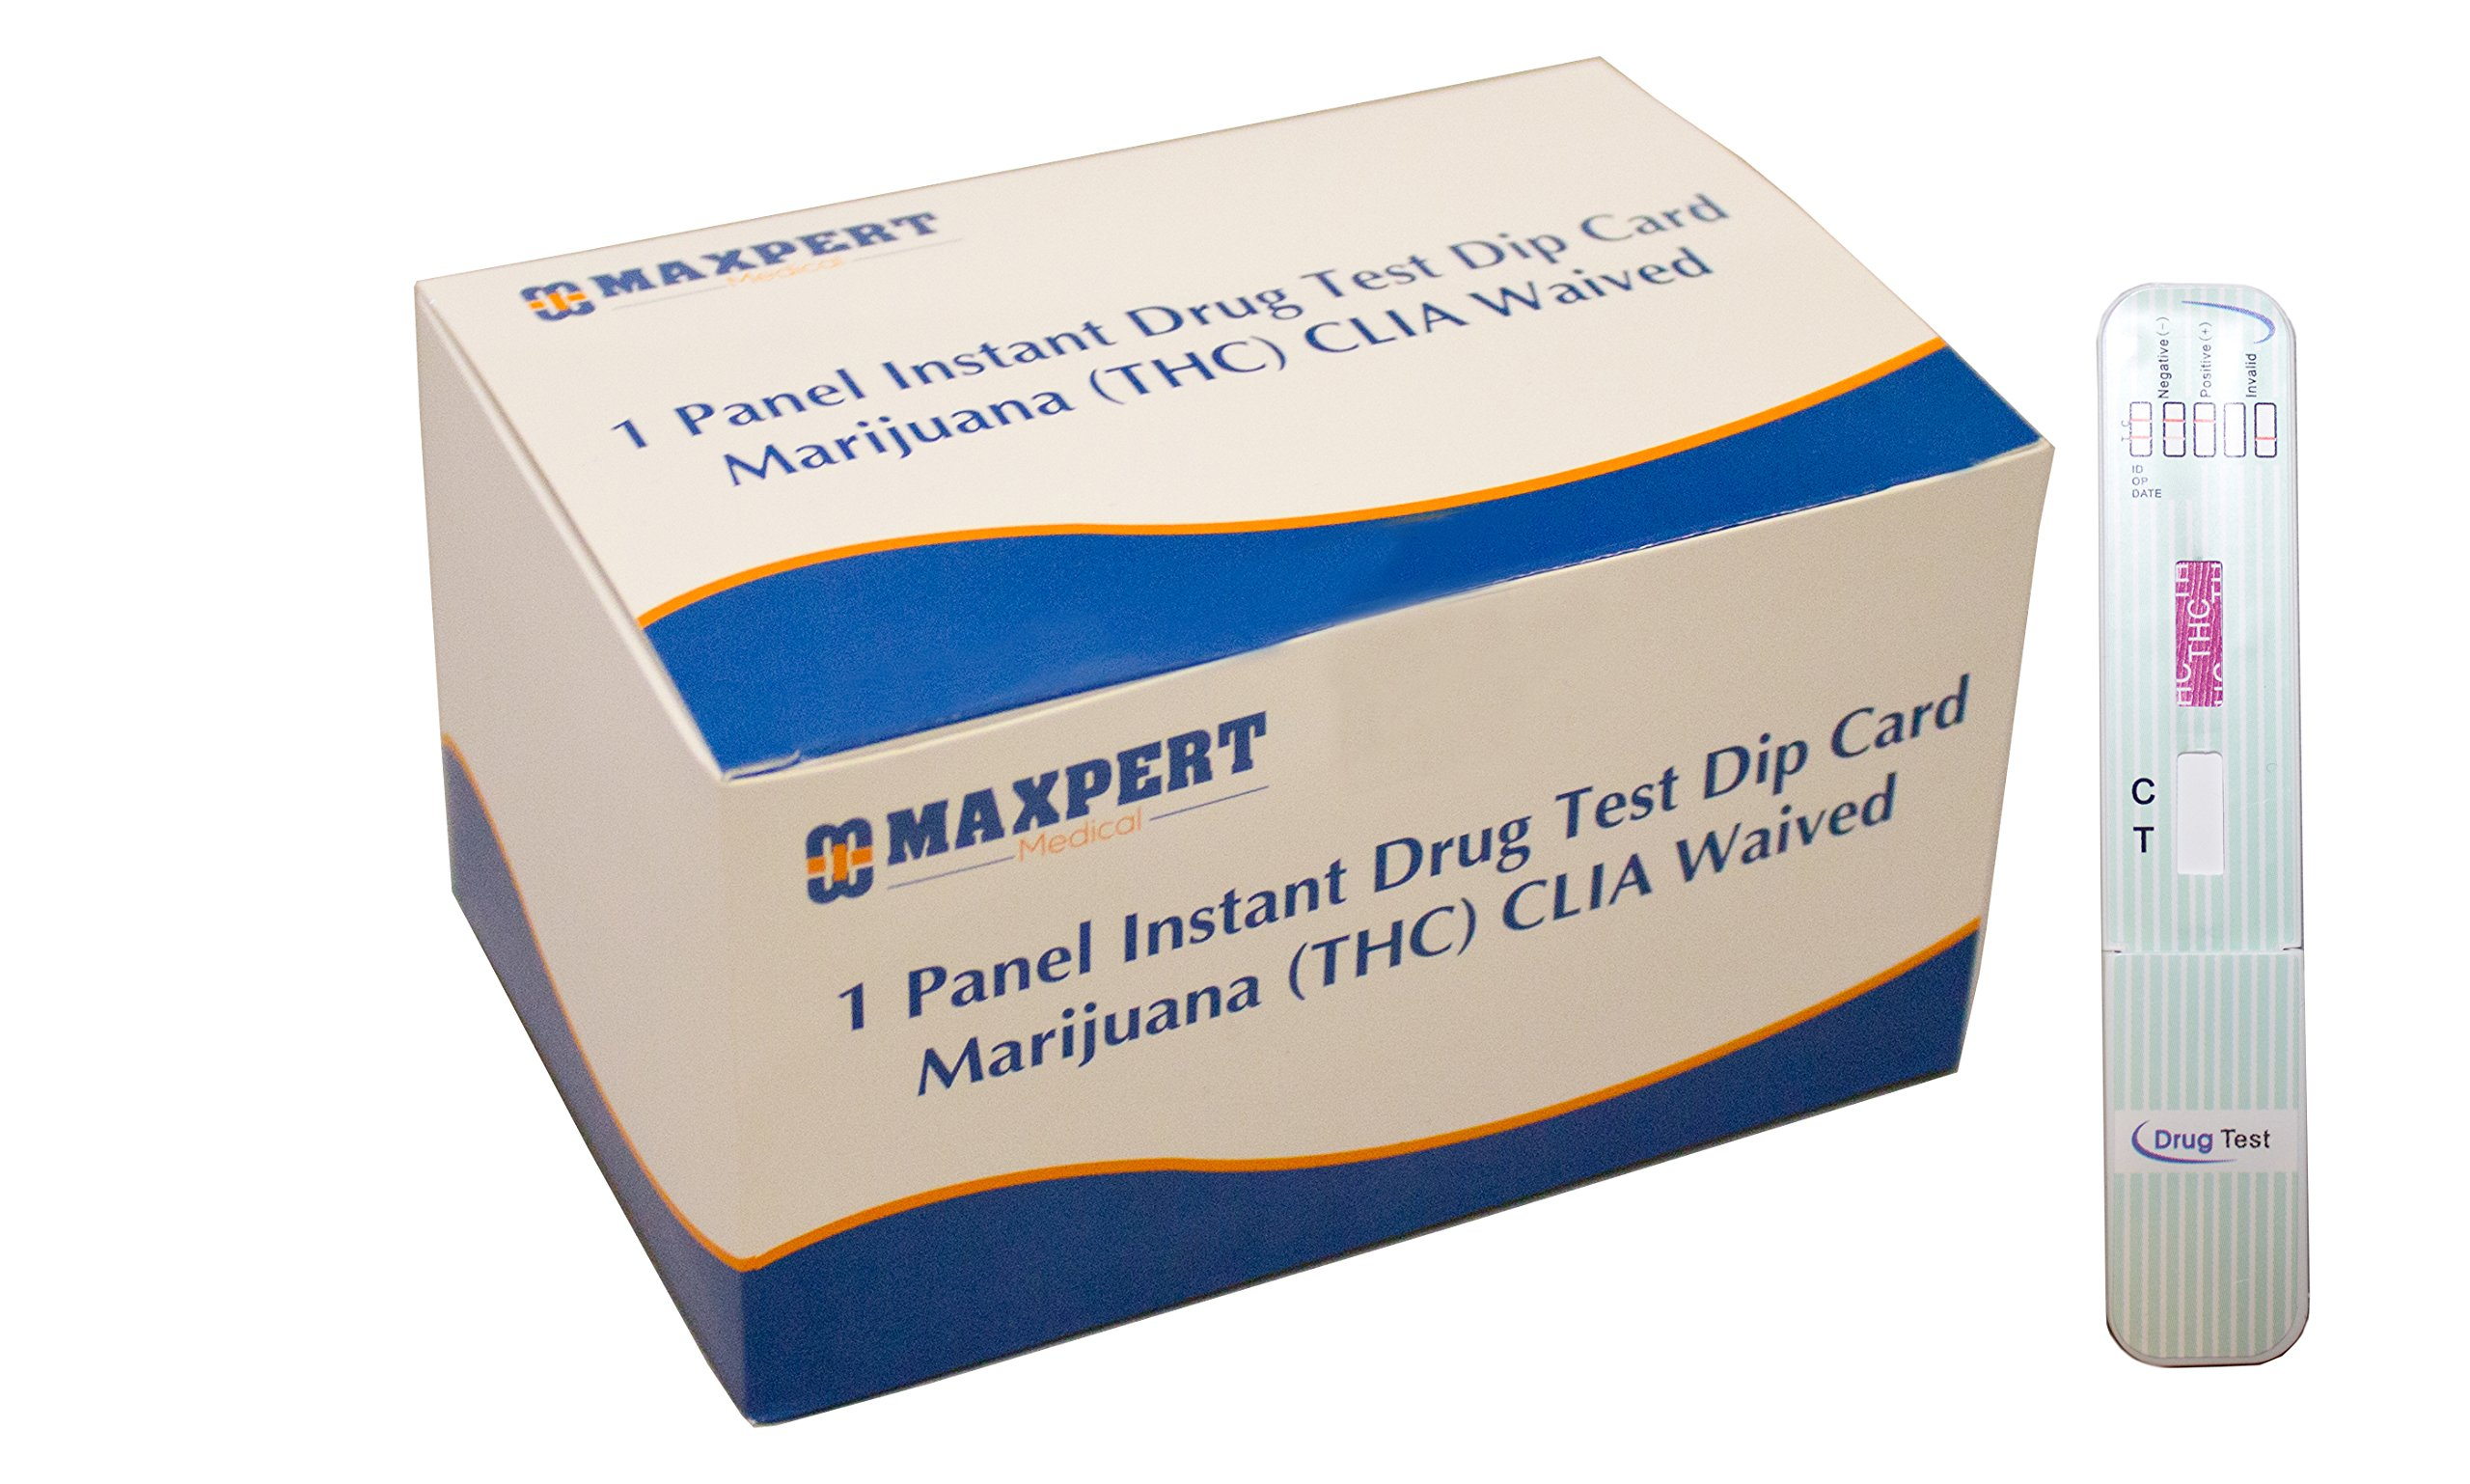 1 Panel Instant Drug Test Dip Card Marijuana (THC) CLIA Waived (25 per package)